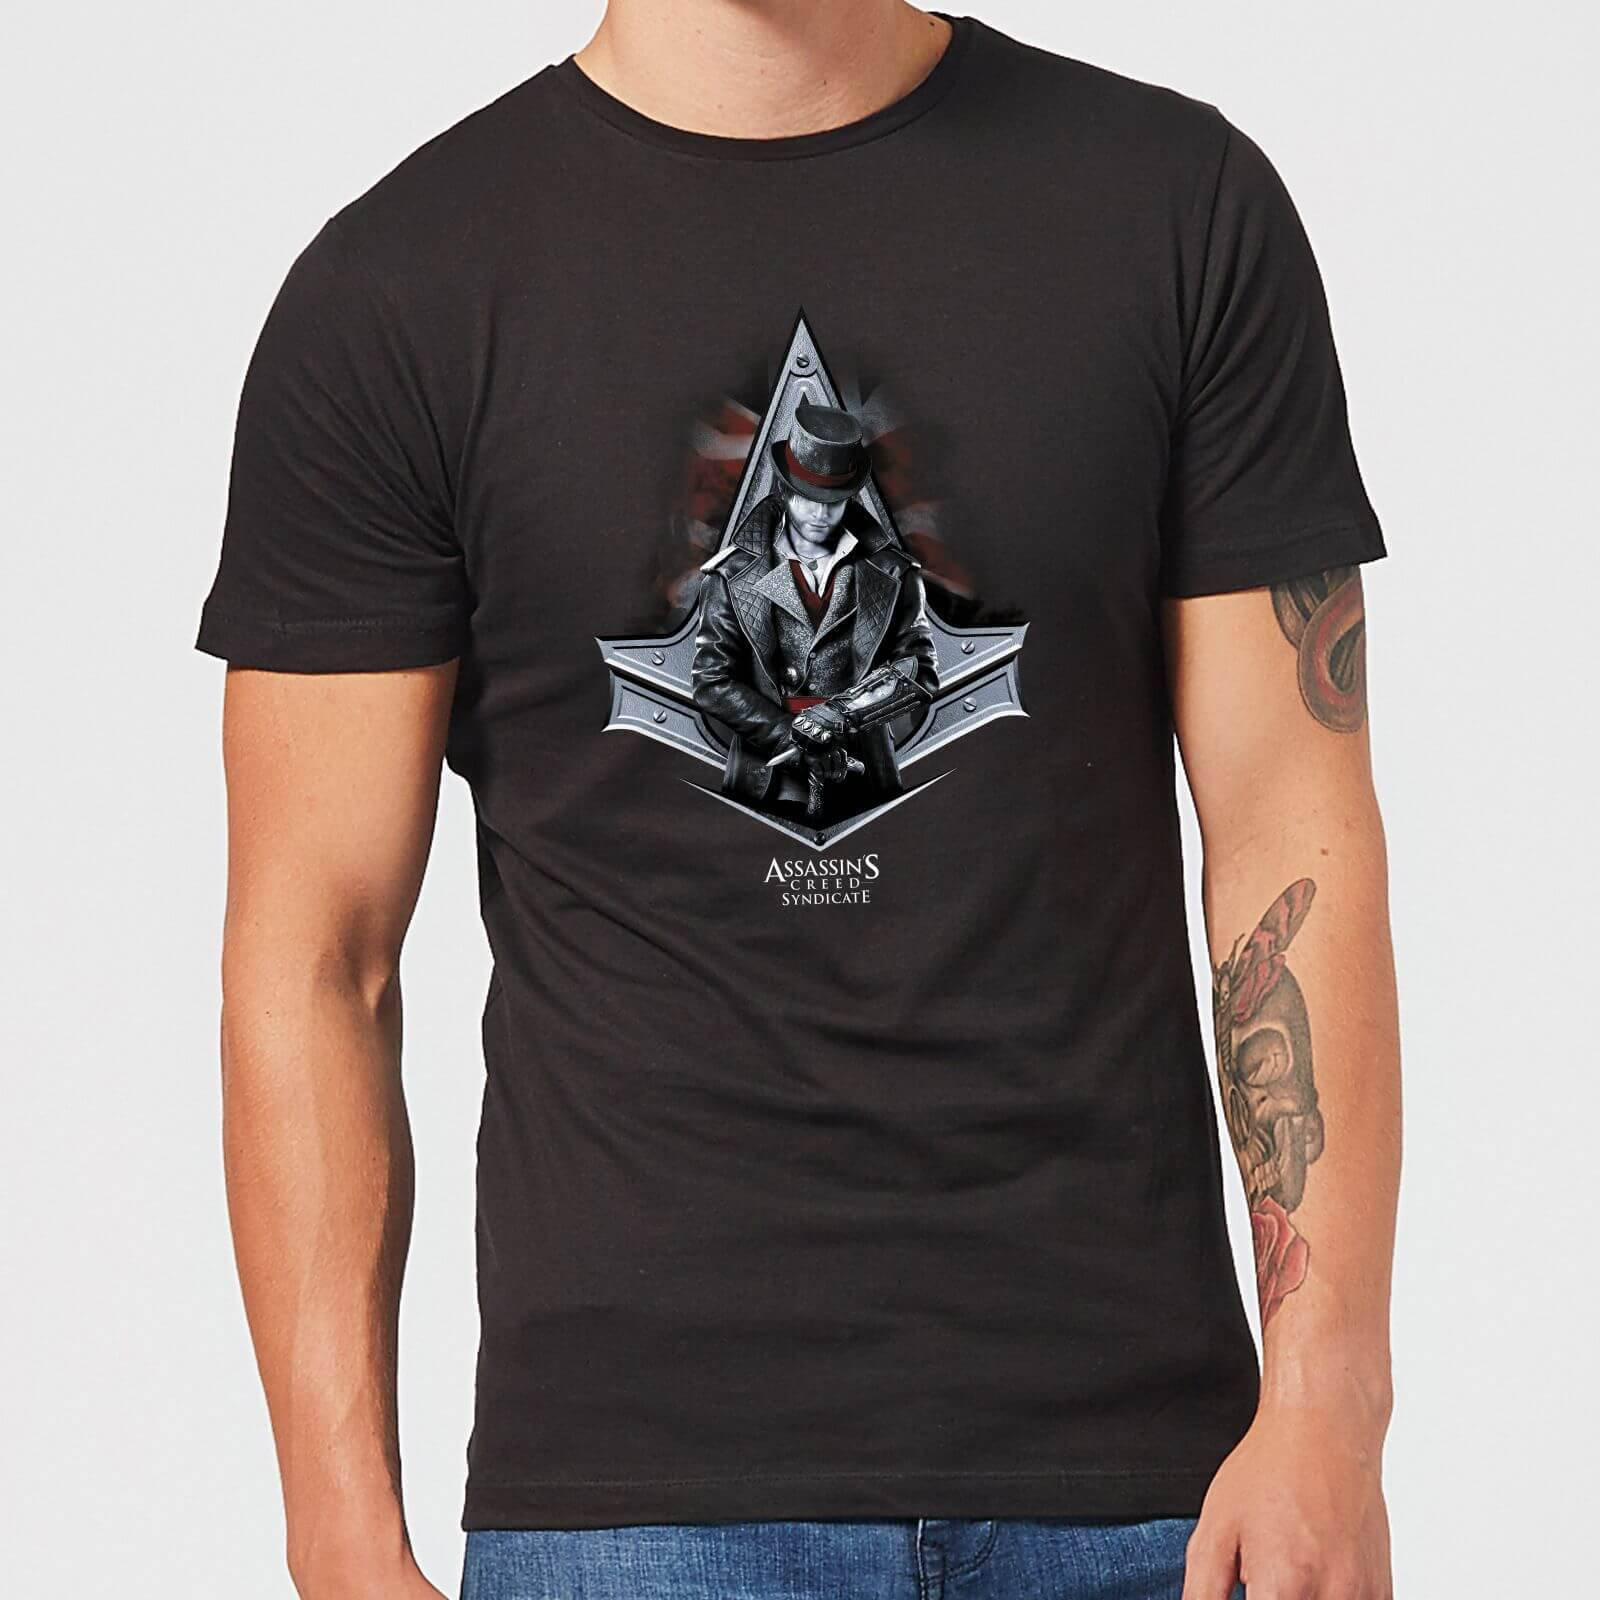 Assassin's Creed T-Shirt Homme Jacob Assassin's Creed Syndicate - Noir - S - Noir